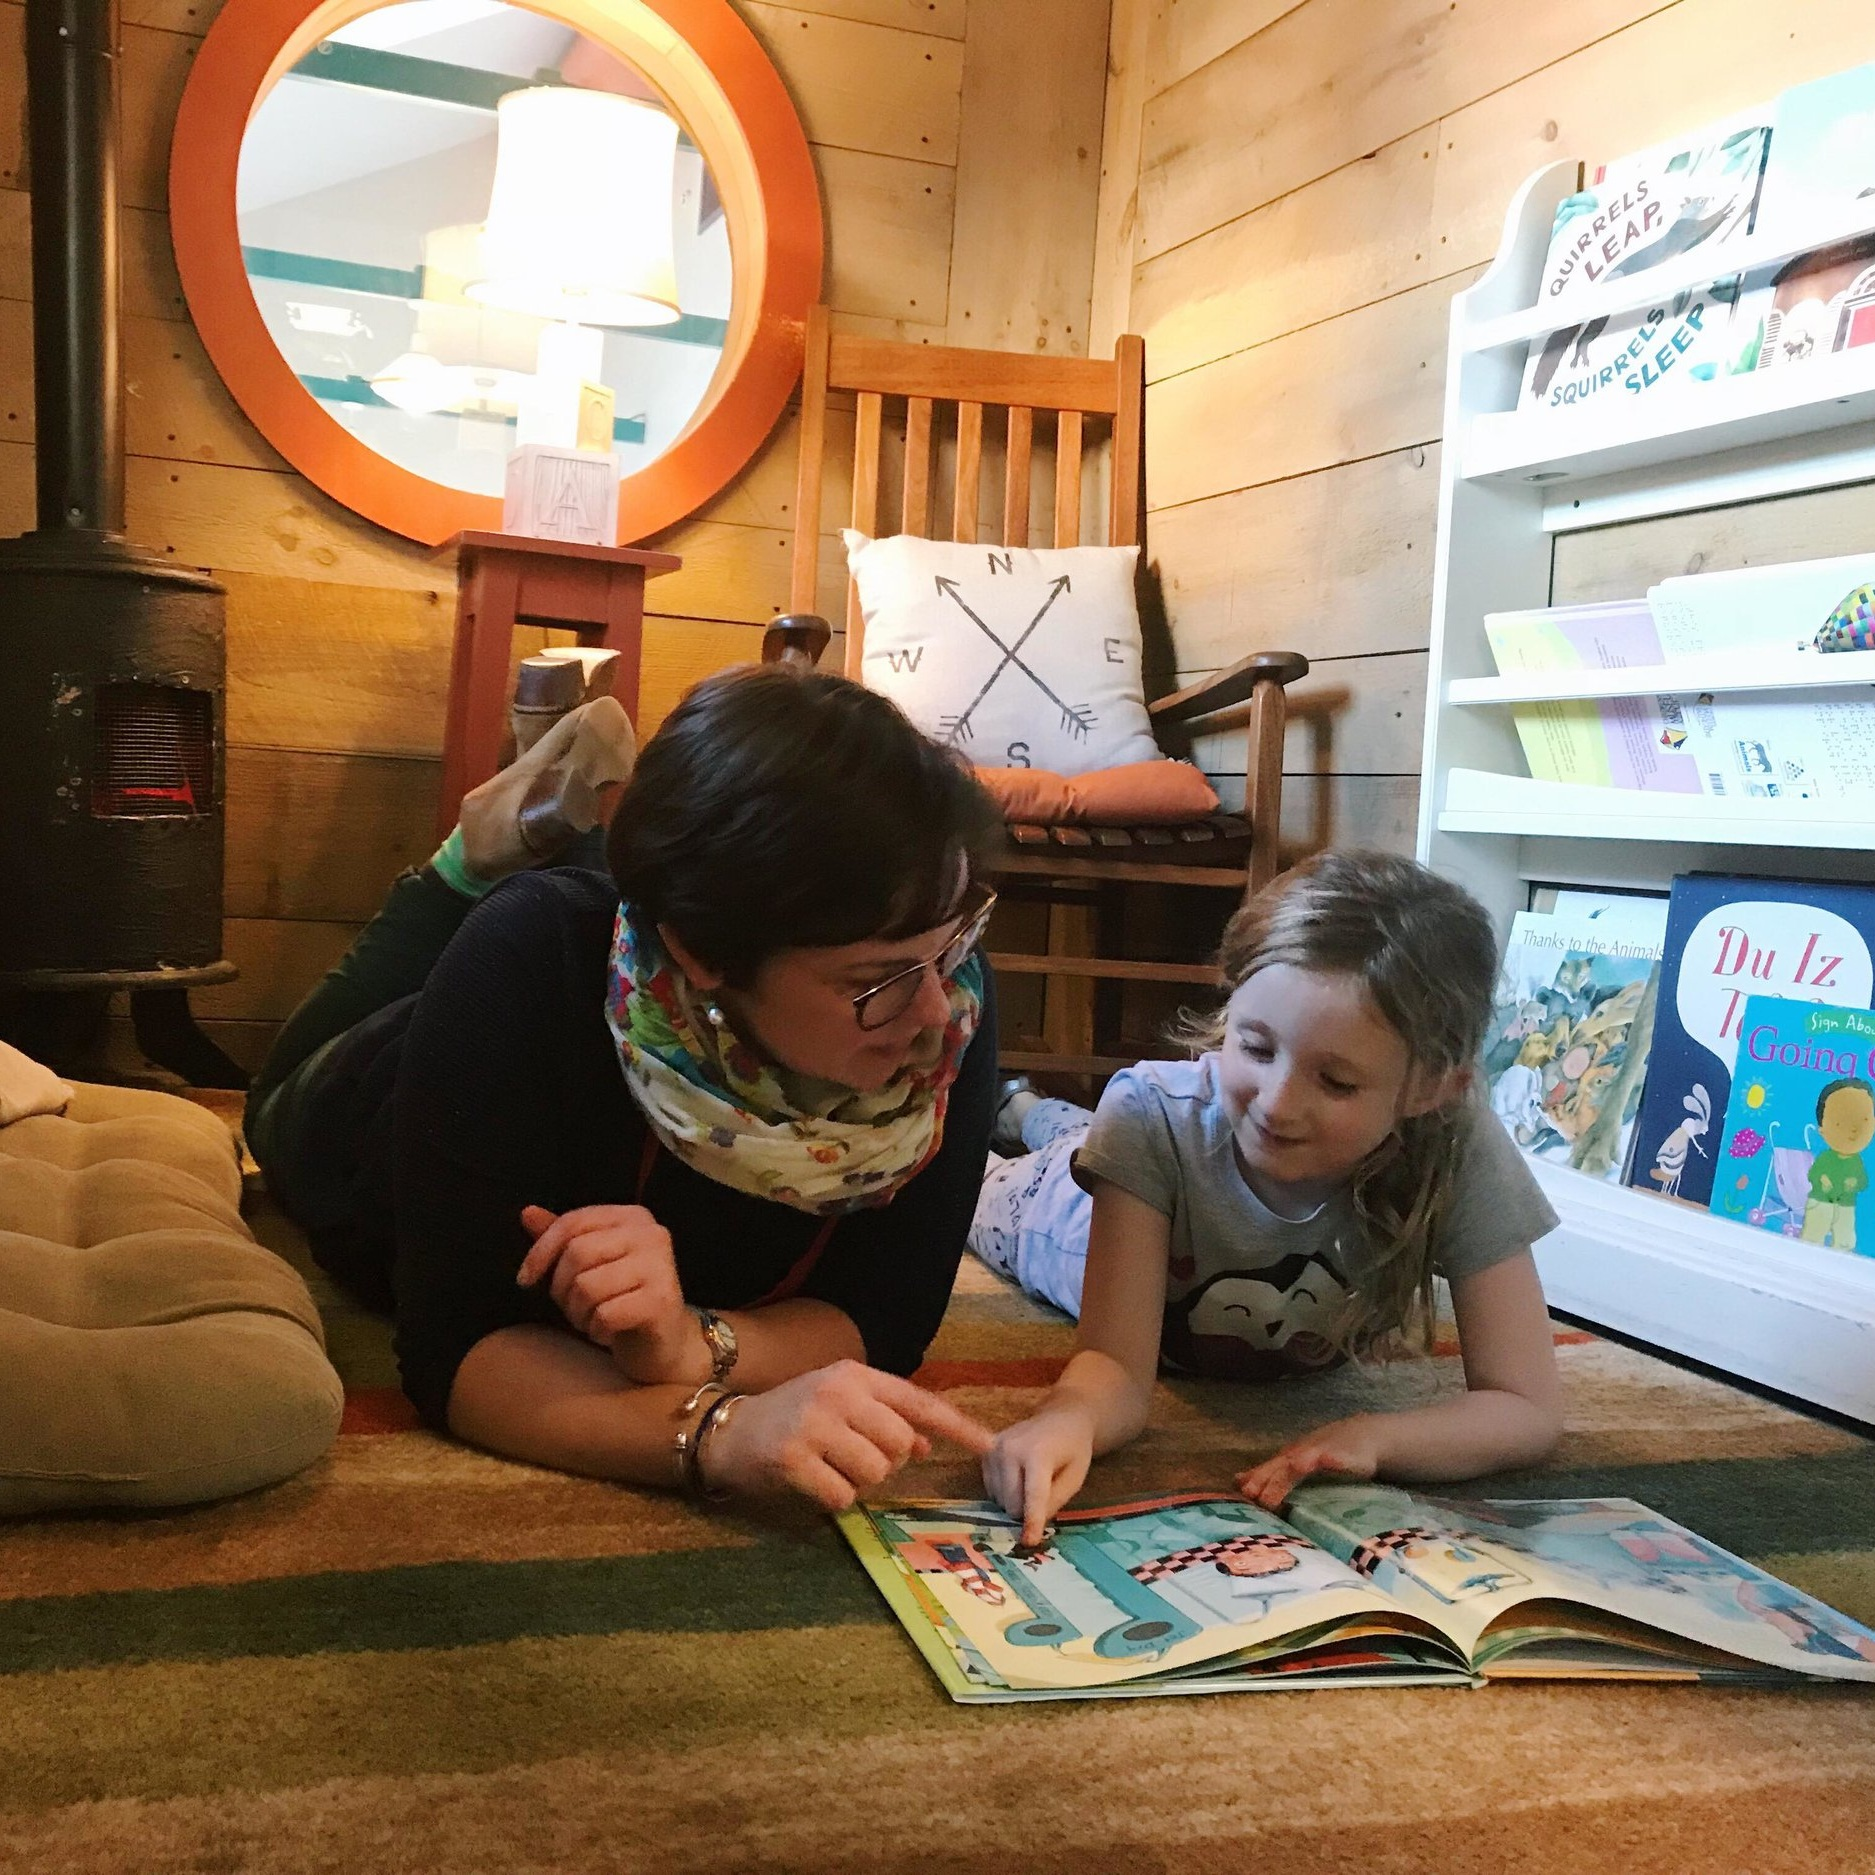 Raising Readers Book Nook - Families can explore and read together in this cozy, quiet space tucked away on the Explore Floor.